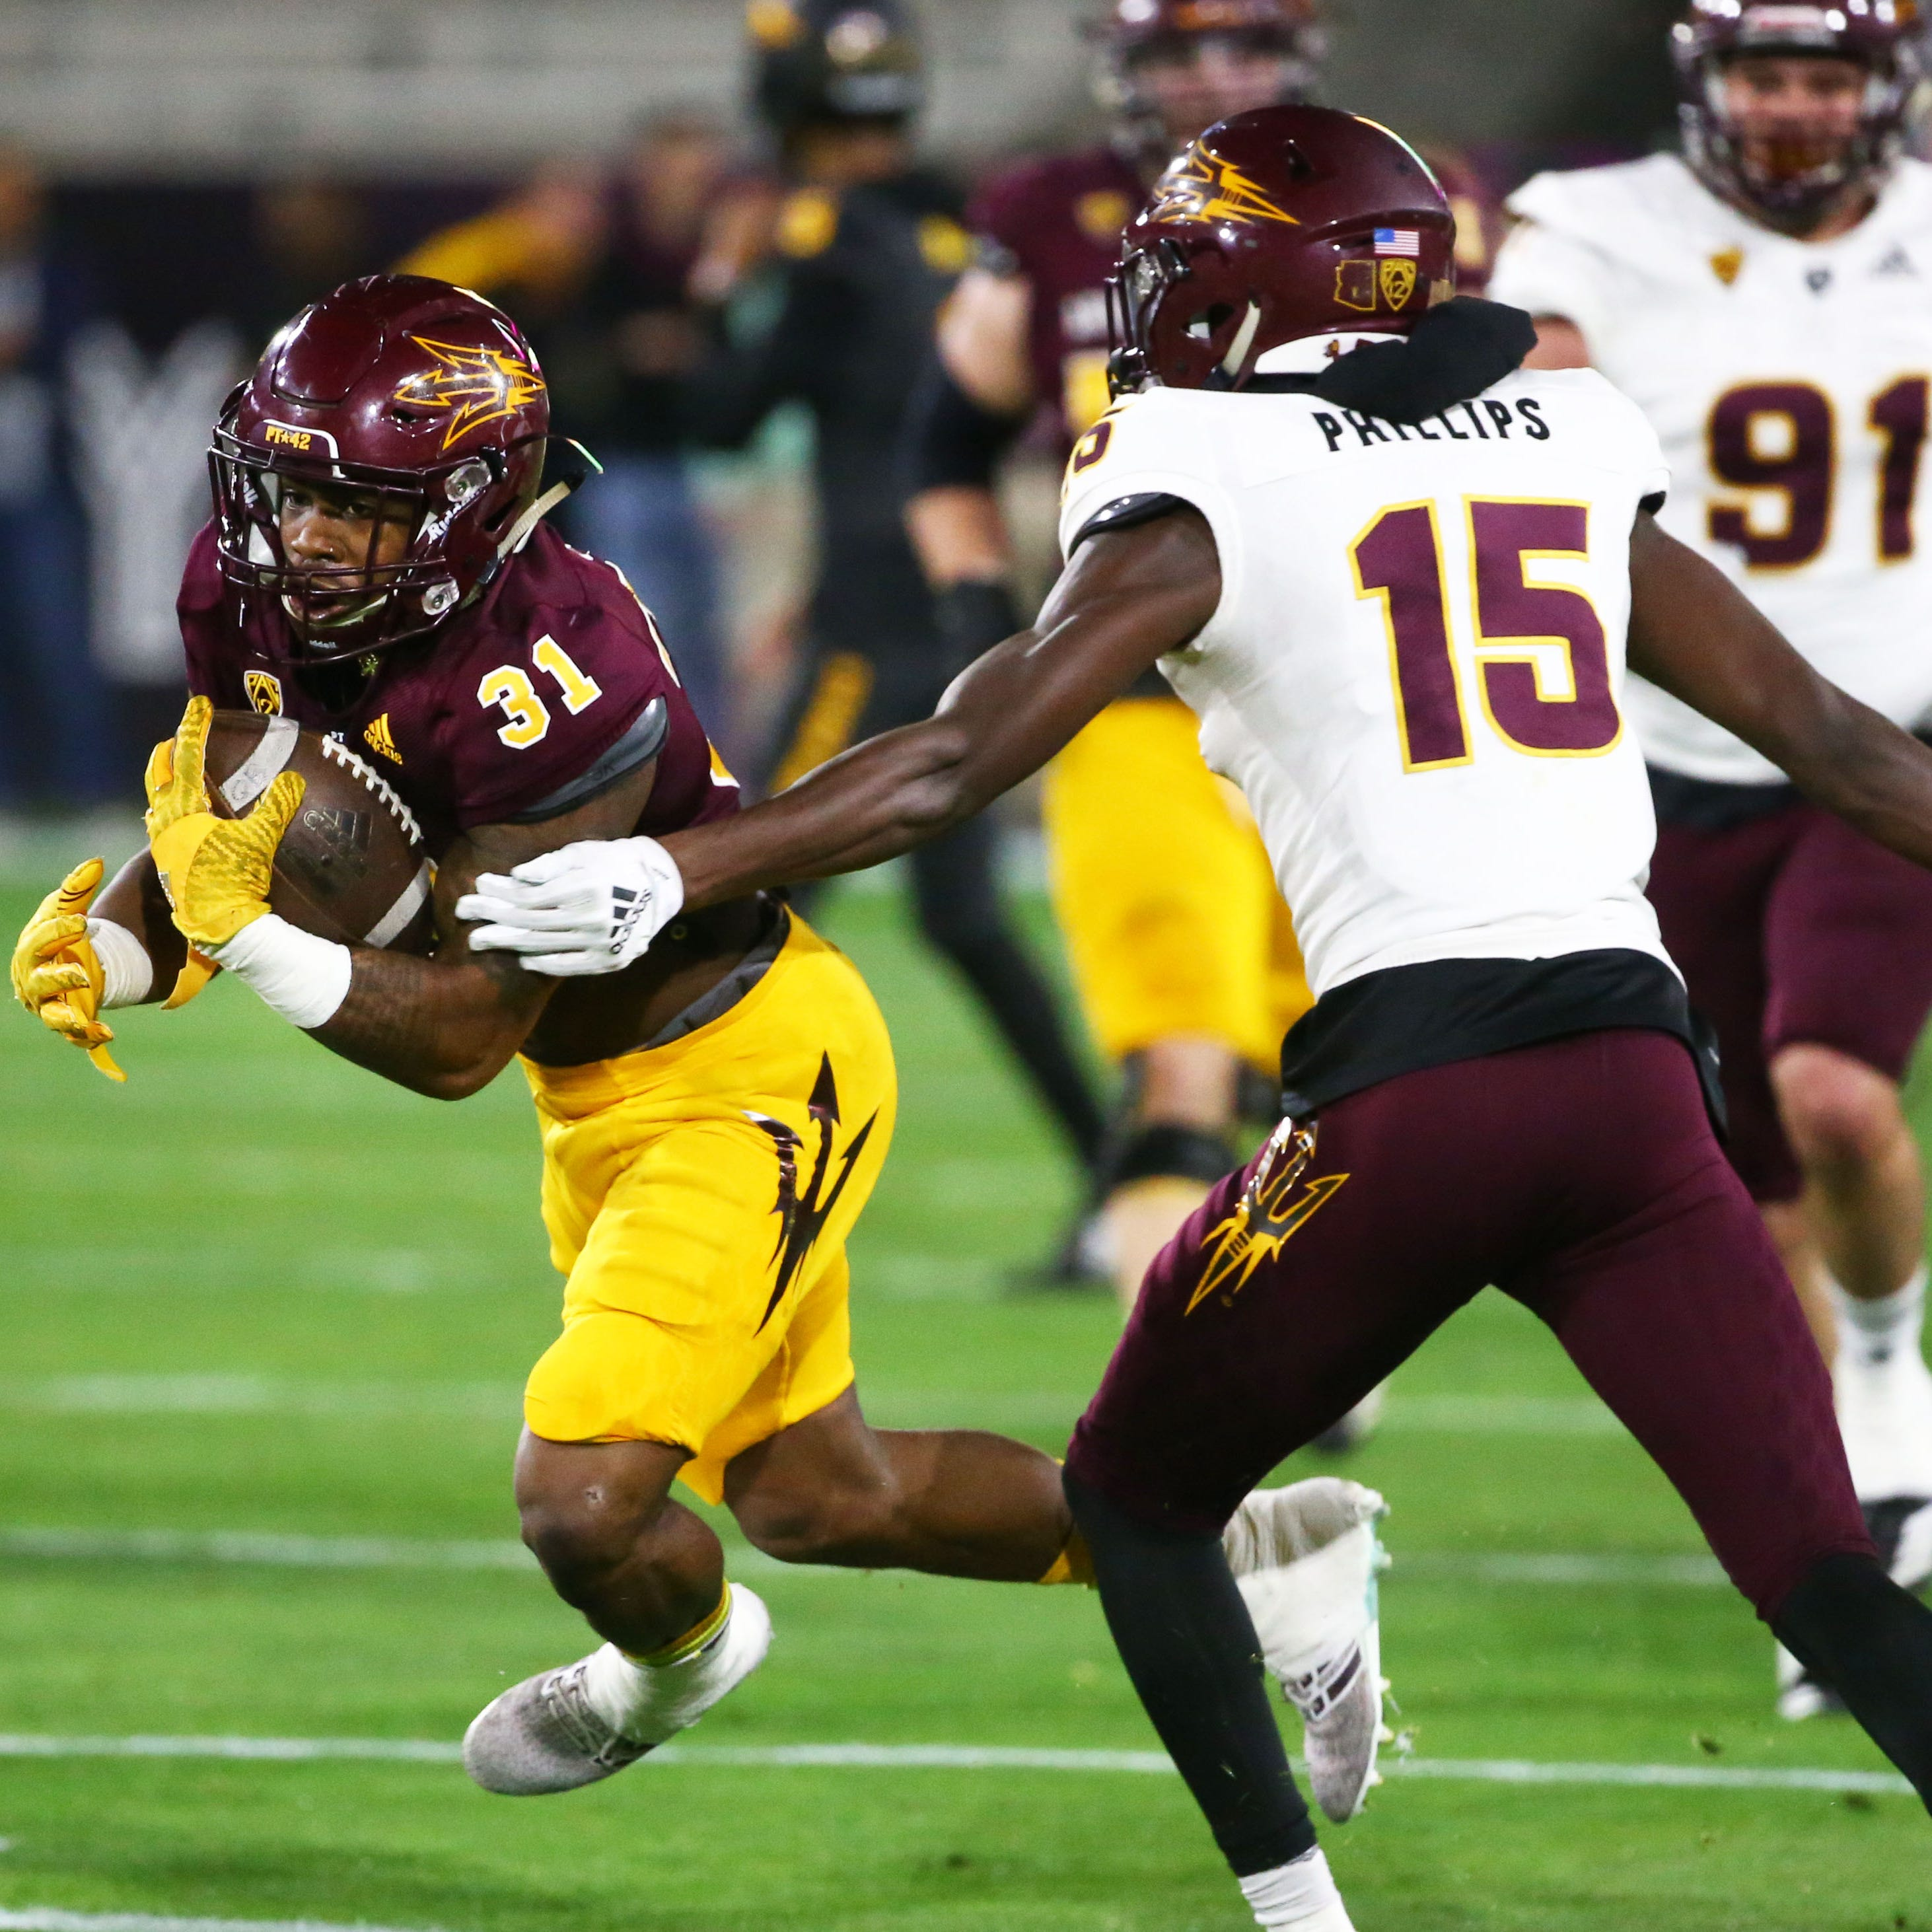 ASU football: Spring drills end with a thud as freshmen QBs get accustomed to stadium